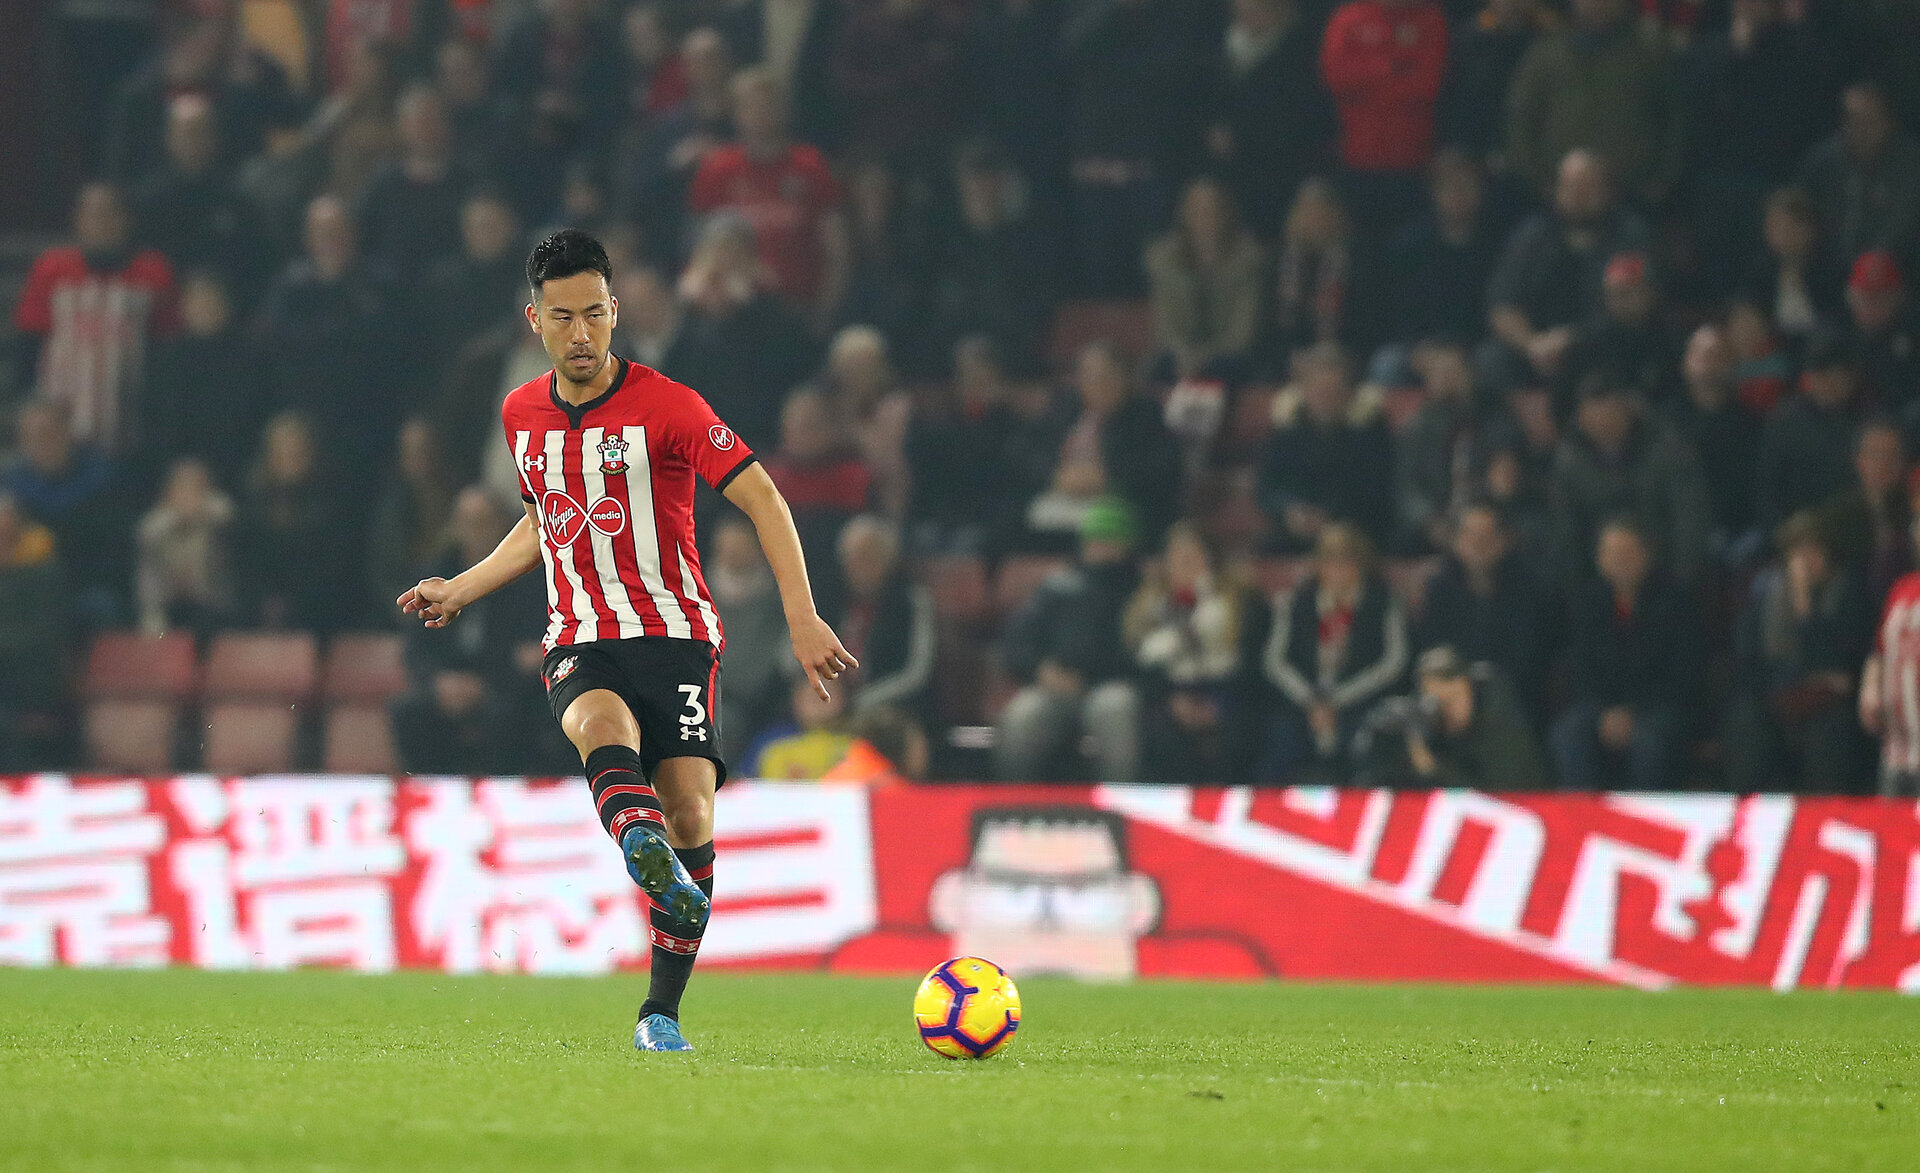 SOUTHAMPTON, ENGLAND - FEBRUARY 27: Maya Yoshida of Southampton during the Premier League match between Southampton FC and Fulham FC at St Mary's Stadium on February 27, 2019 in Southampton, United Kingdom. (Photo by Matt Watson/Southampton FC via Getty Images)